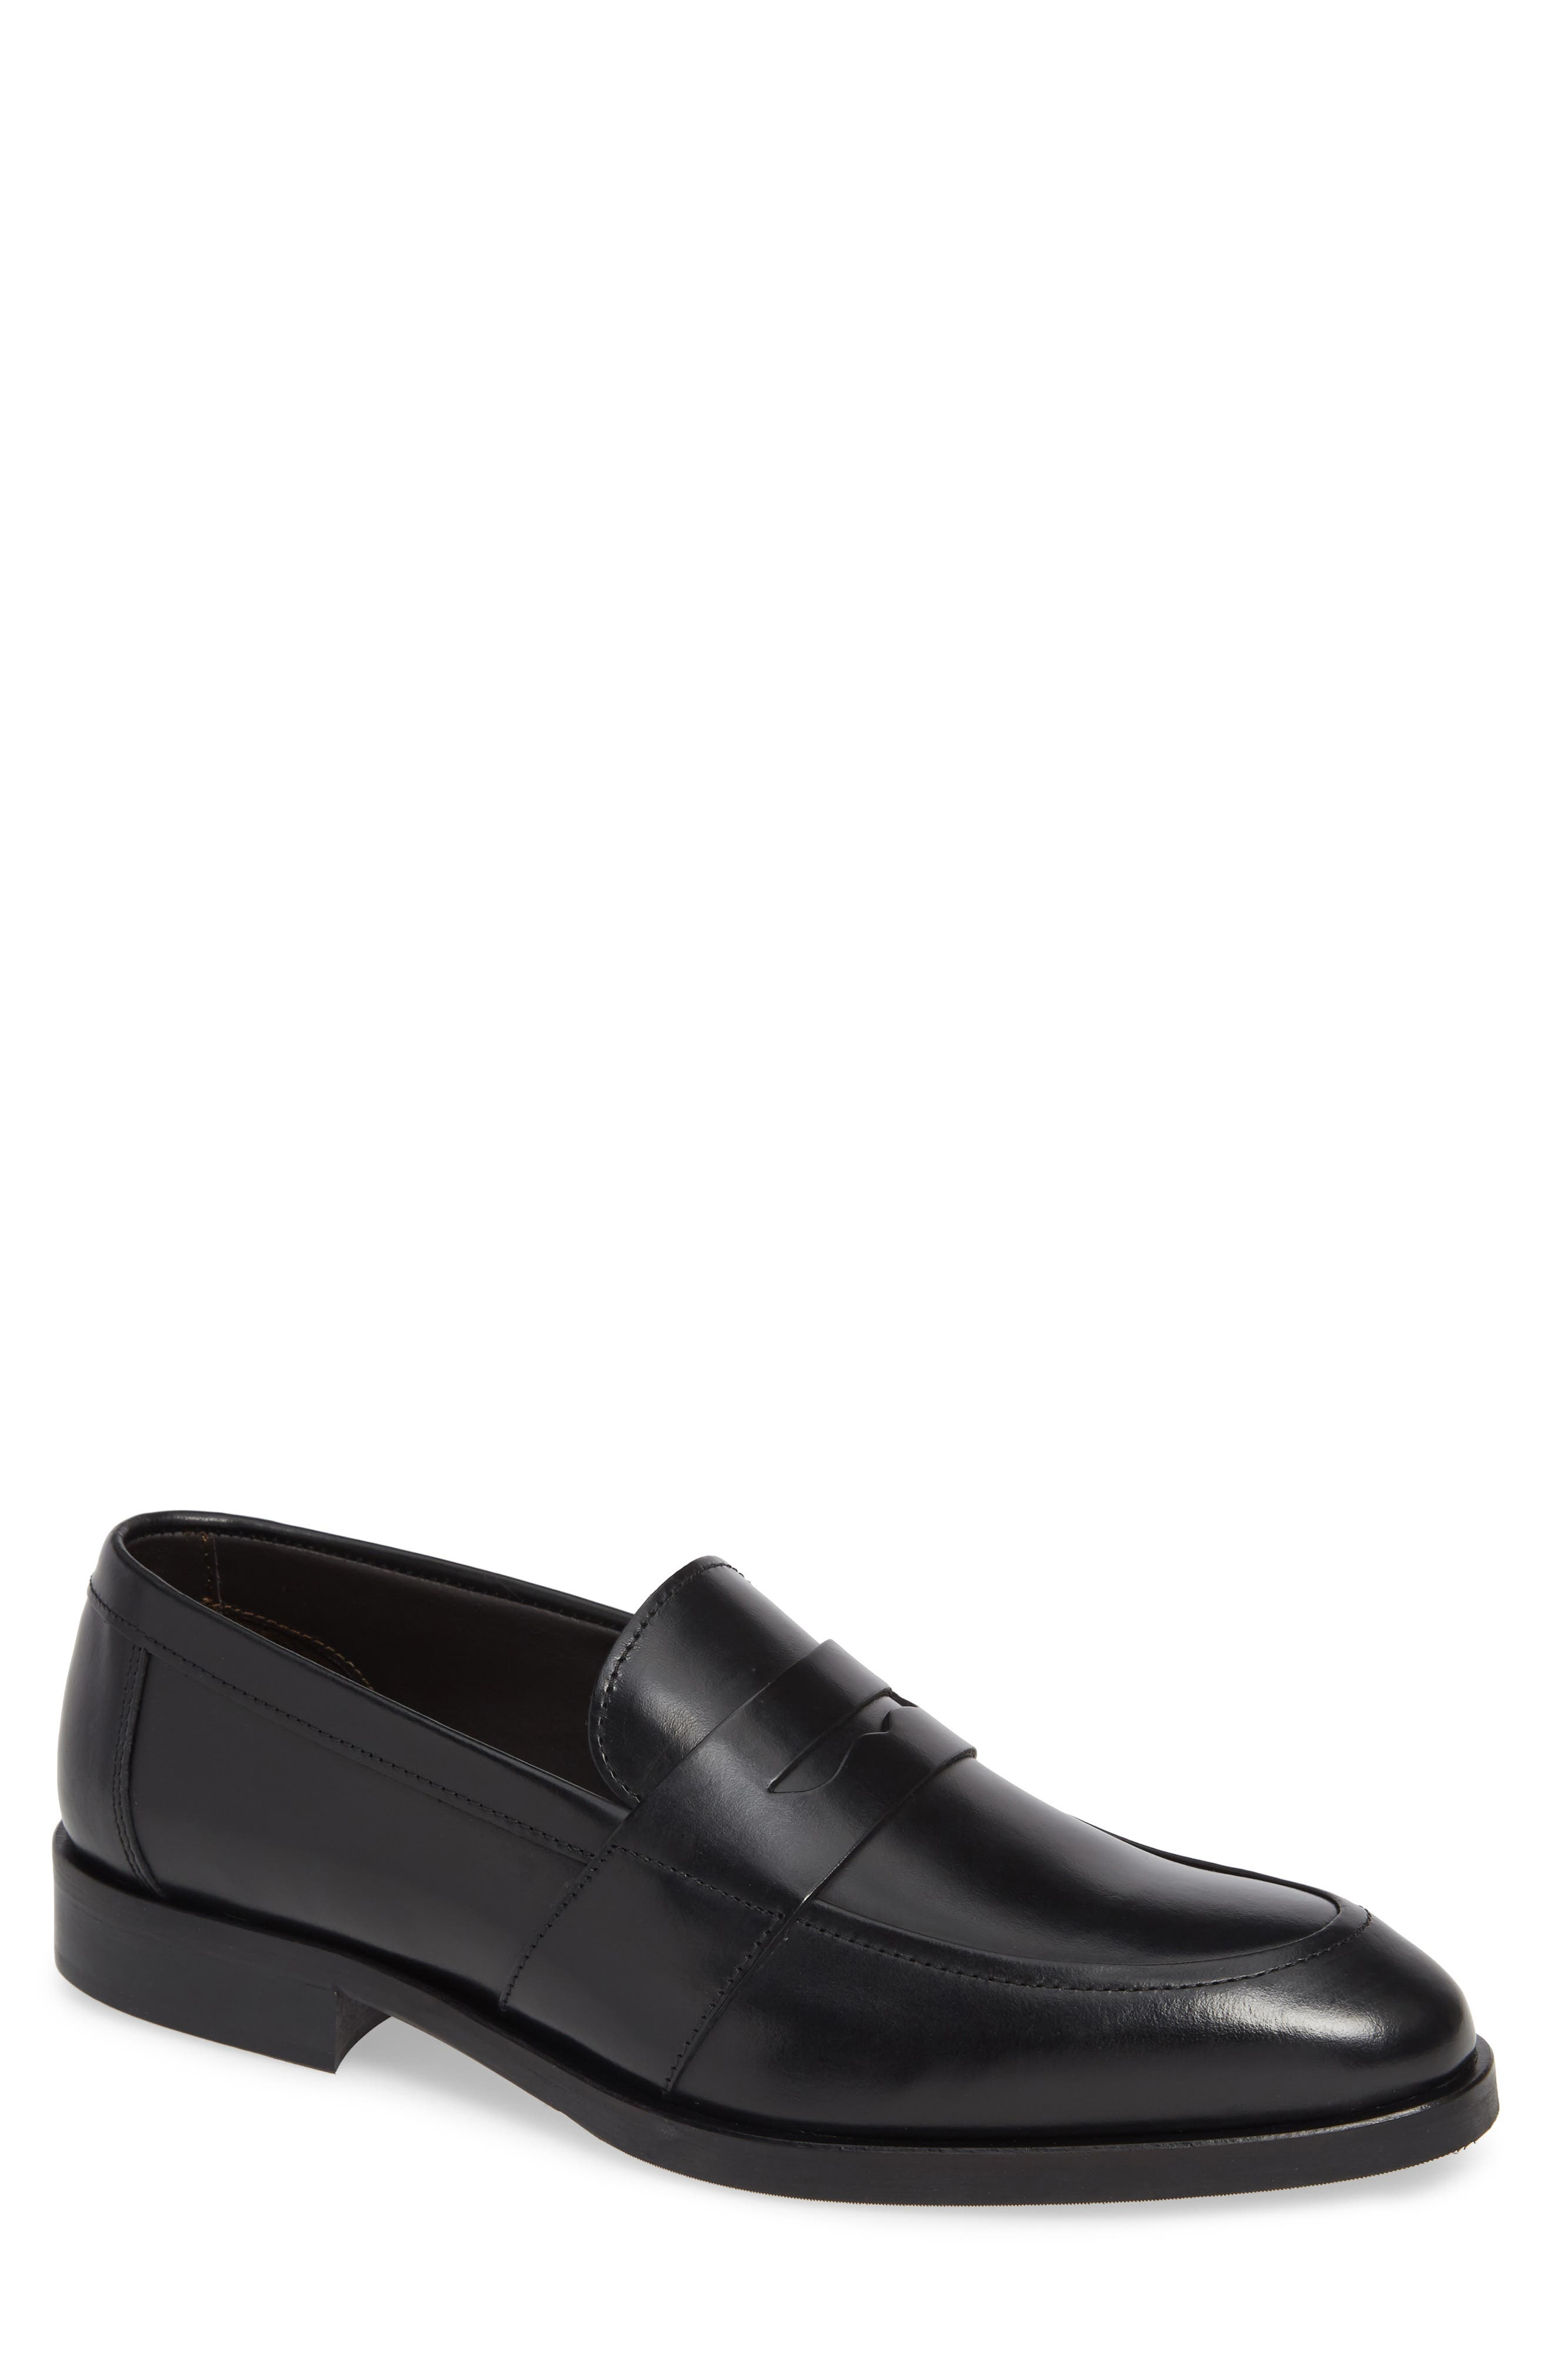 TO BOOT NEW YORK Men'S Devries Leather Apron-Toe Penny Loafers in Vitello Nero Leather